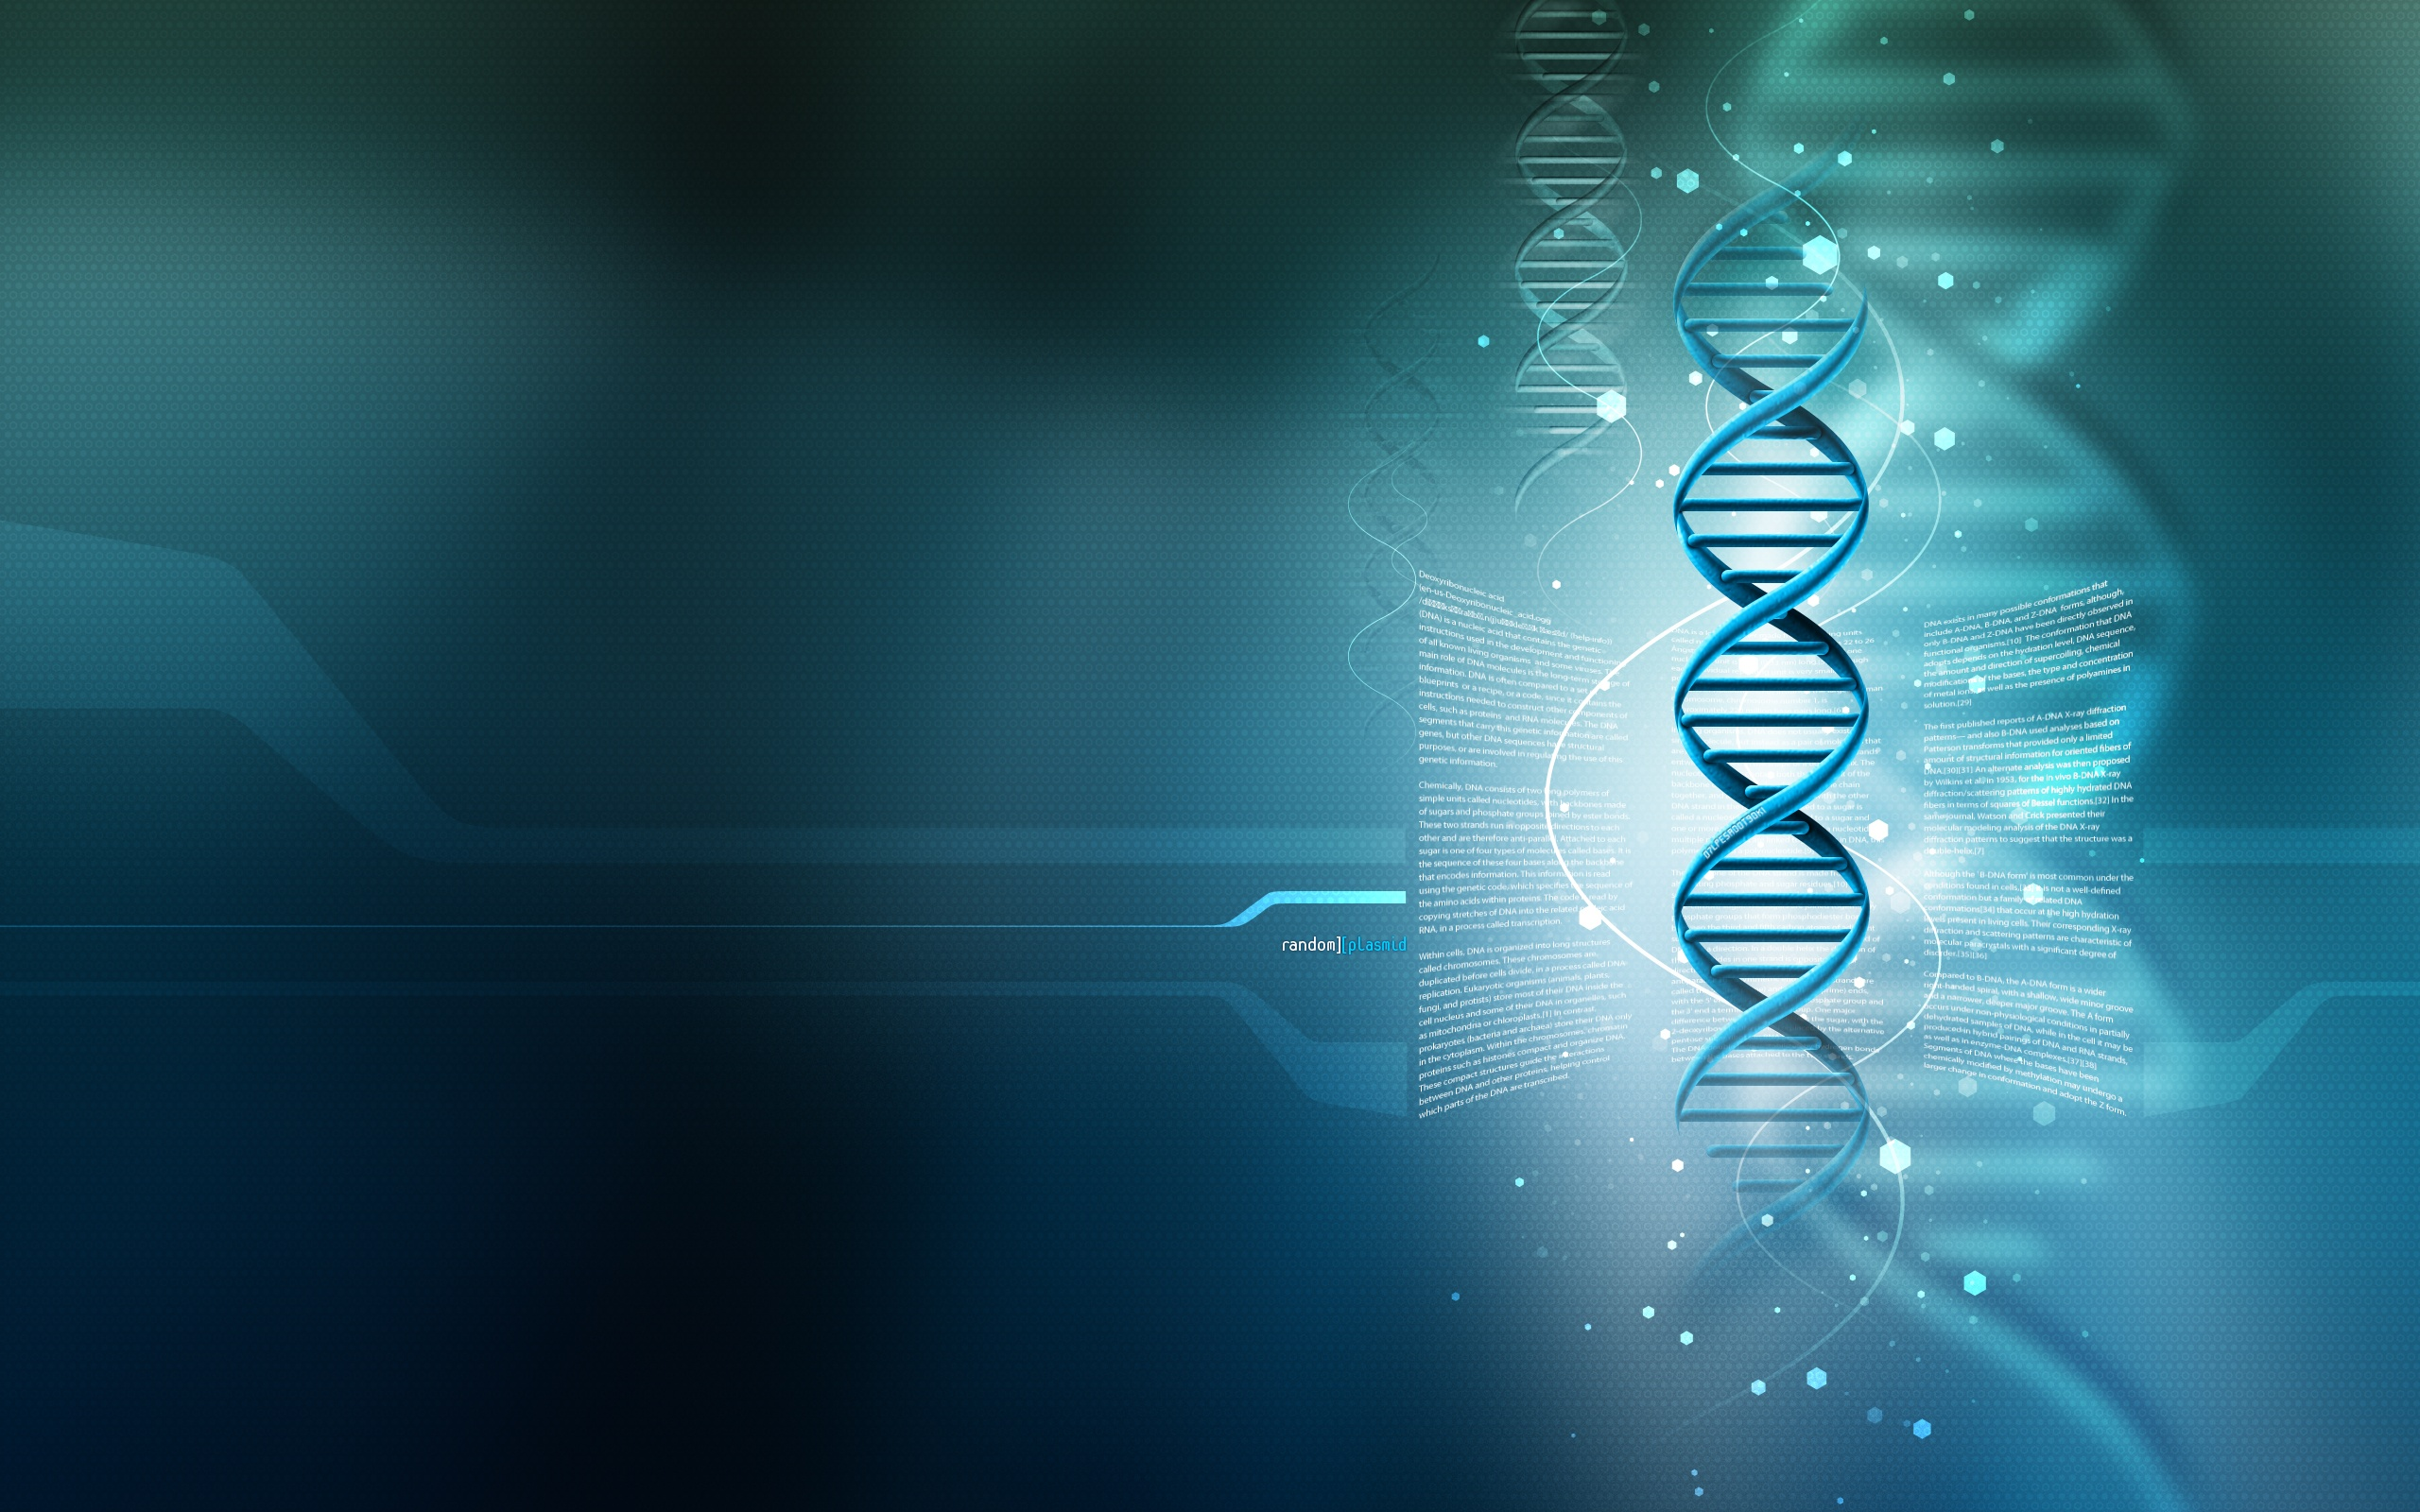 3d Dna Wallpapers In Jpg Format For Free Download